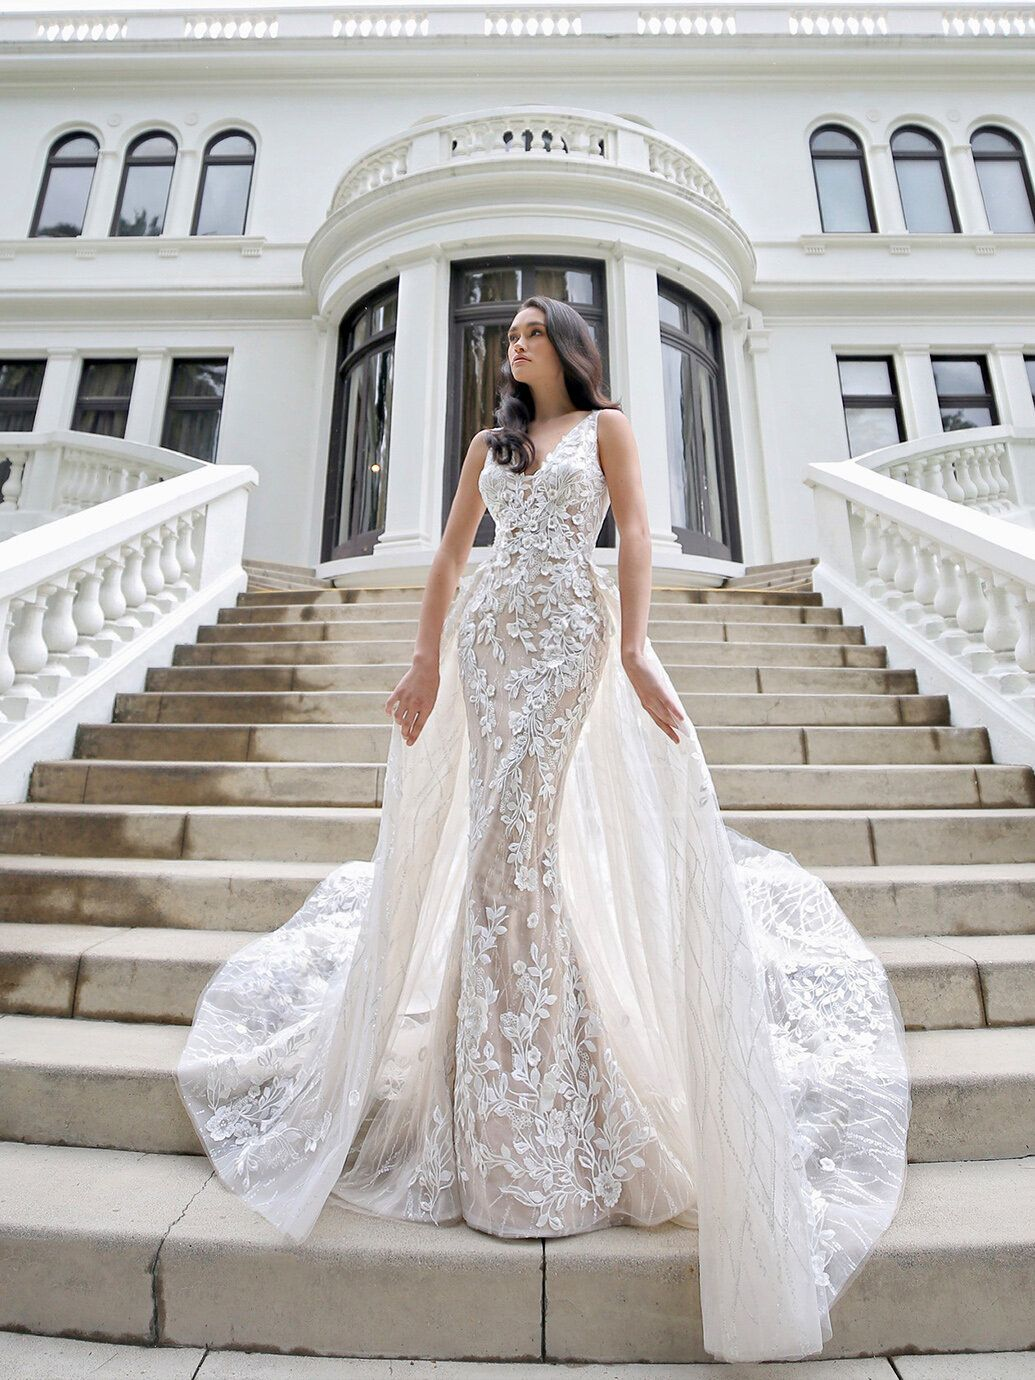 Blue By Enzoani The Wedding Boutique In 2020 Enzoani Wedding Dresses Used Wedding Dresses Wedding Dresses